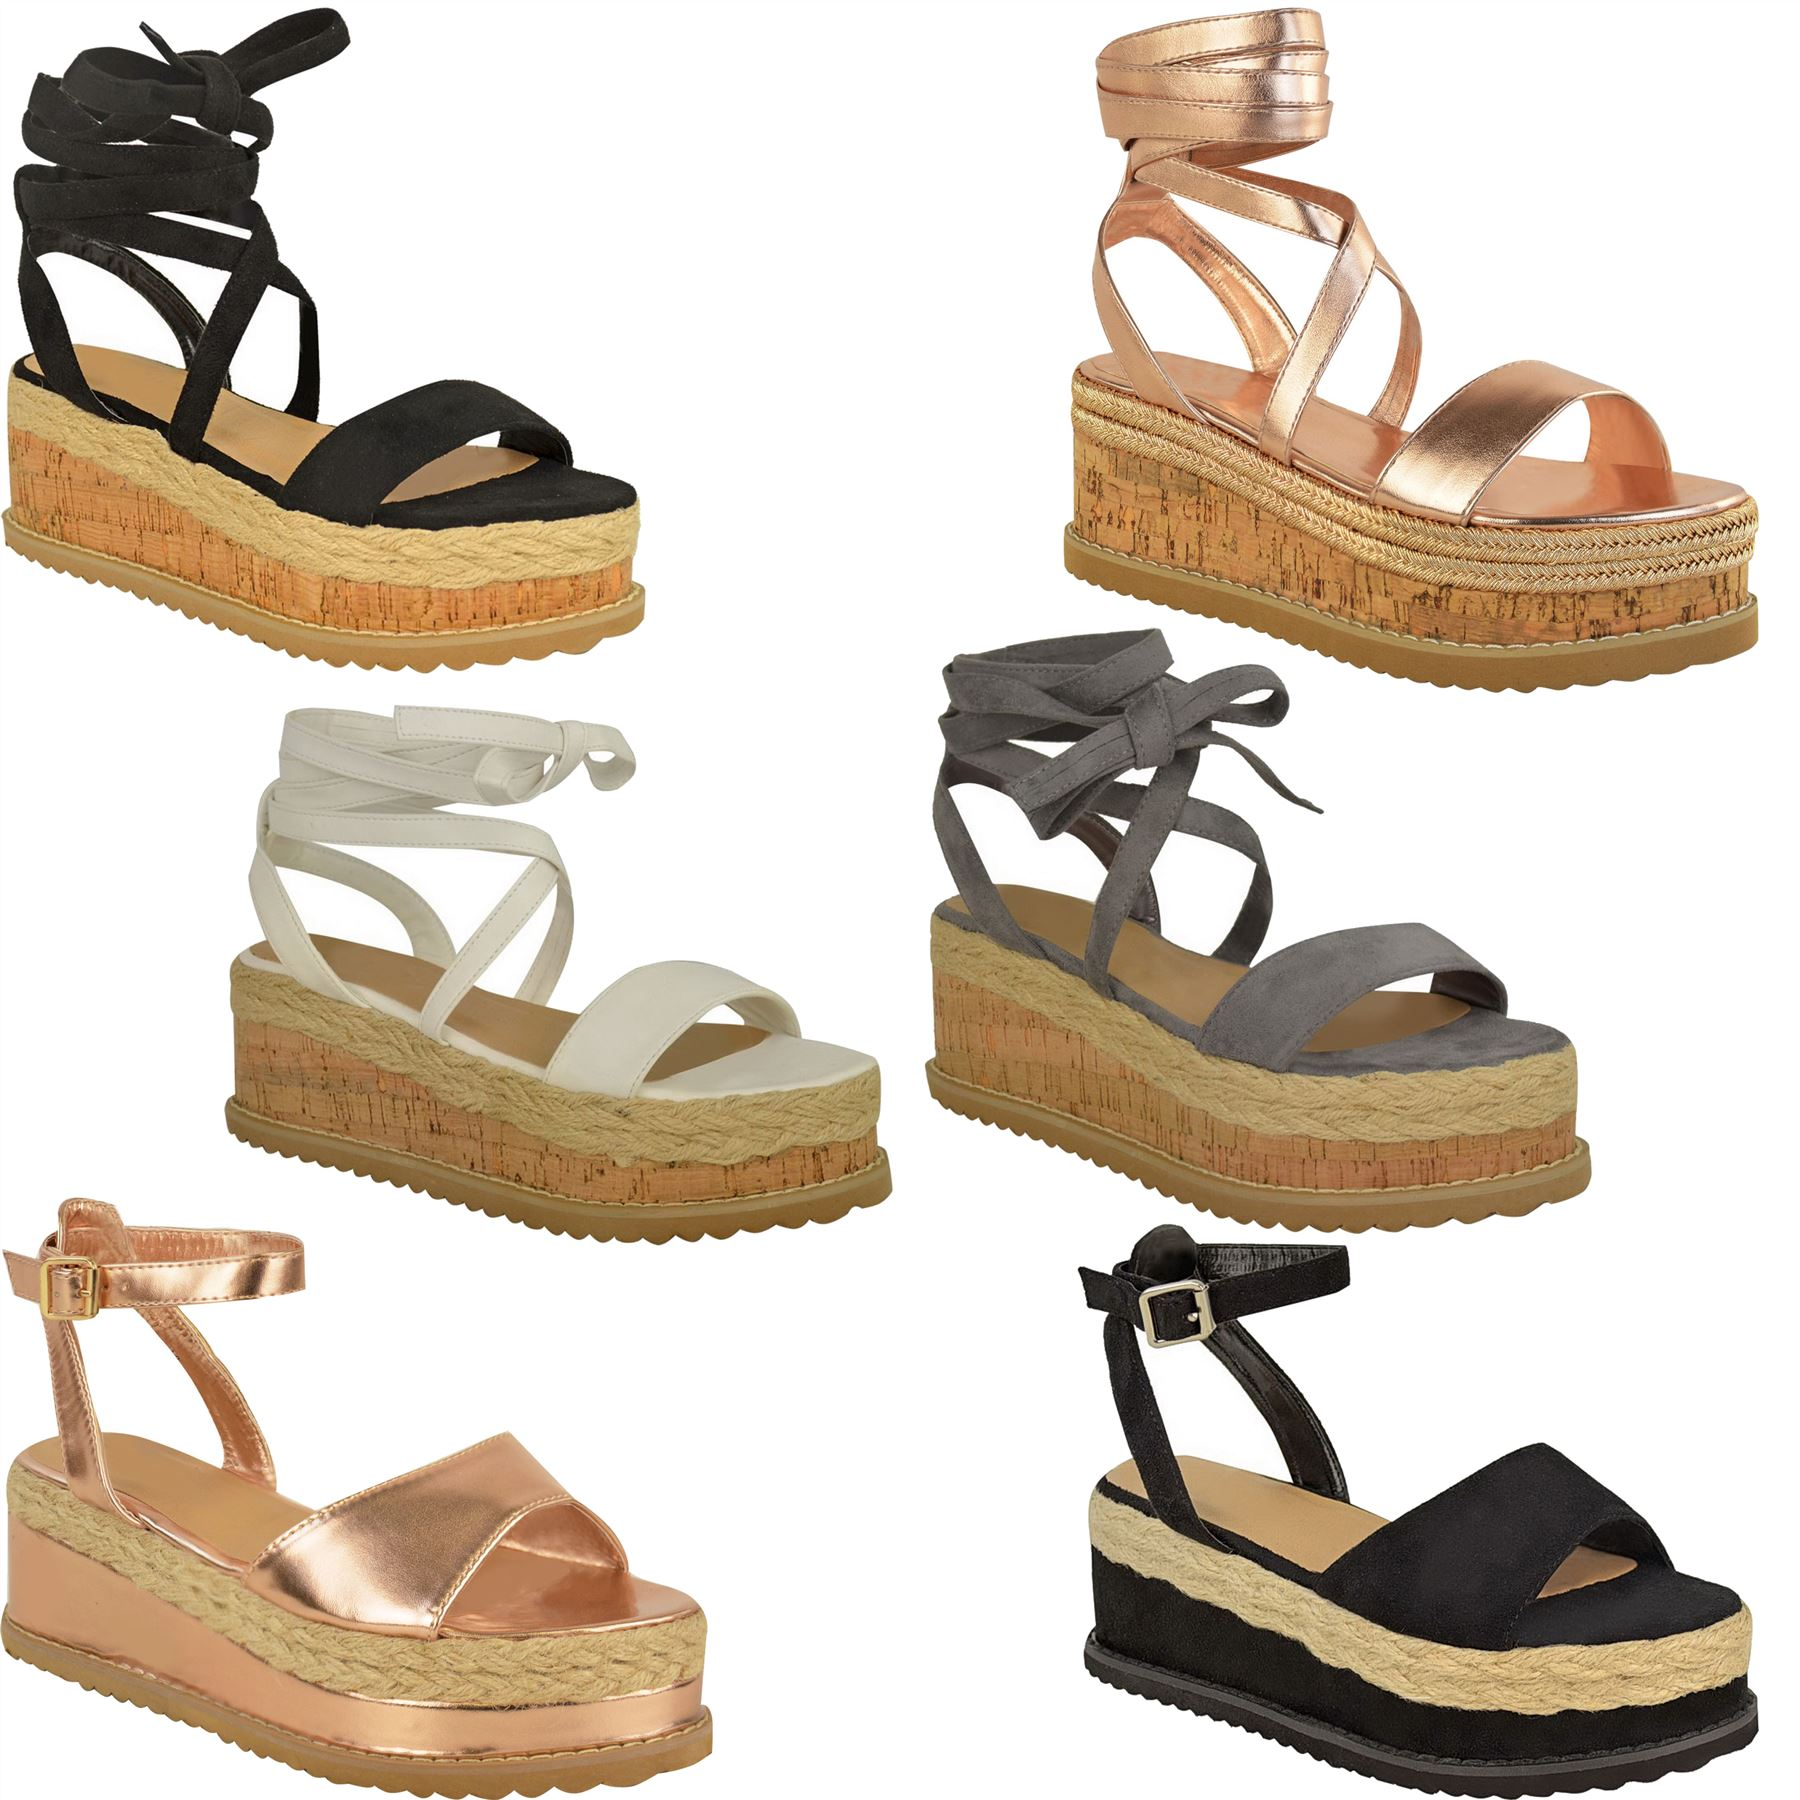 2df27750a Details about Womens Ladies Flat Wedge Platform Espadrille Sandals Lace Tie  Up Summer Shoes